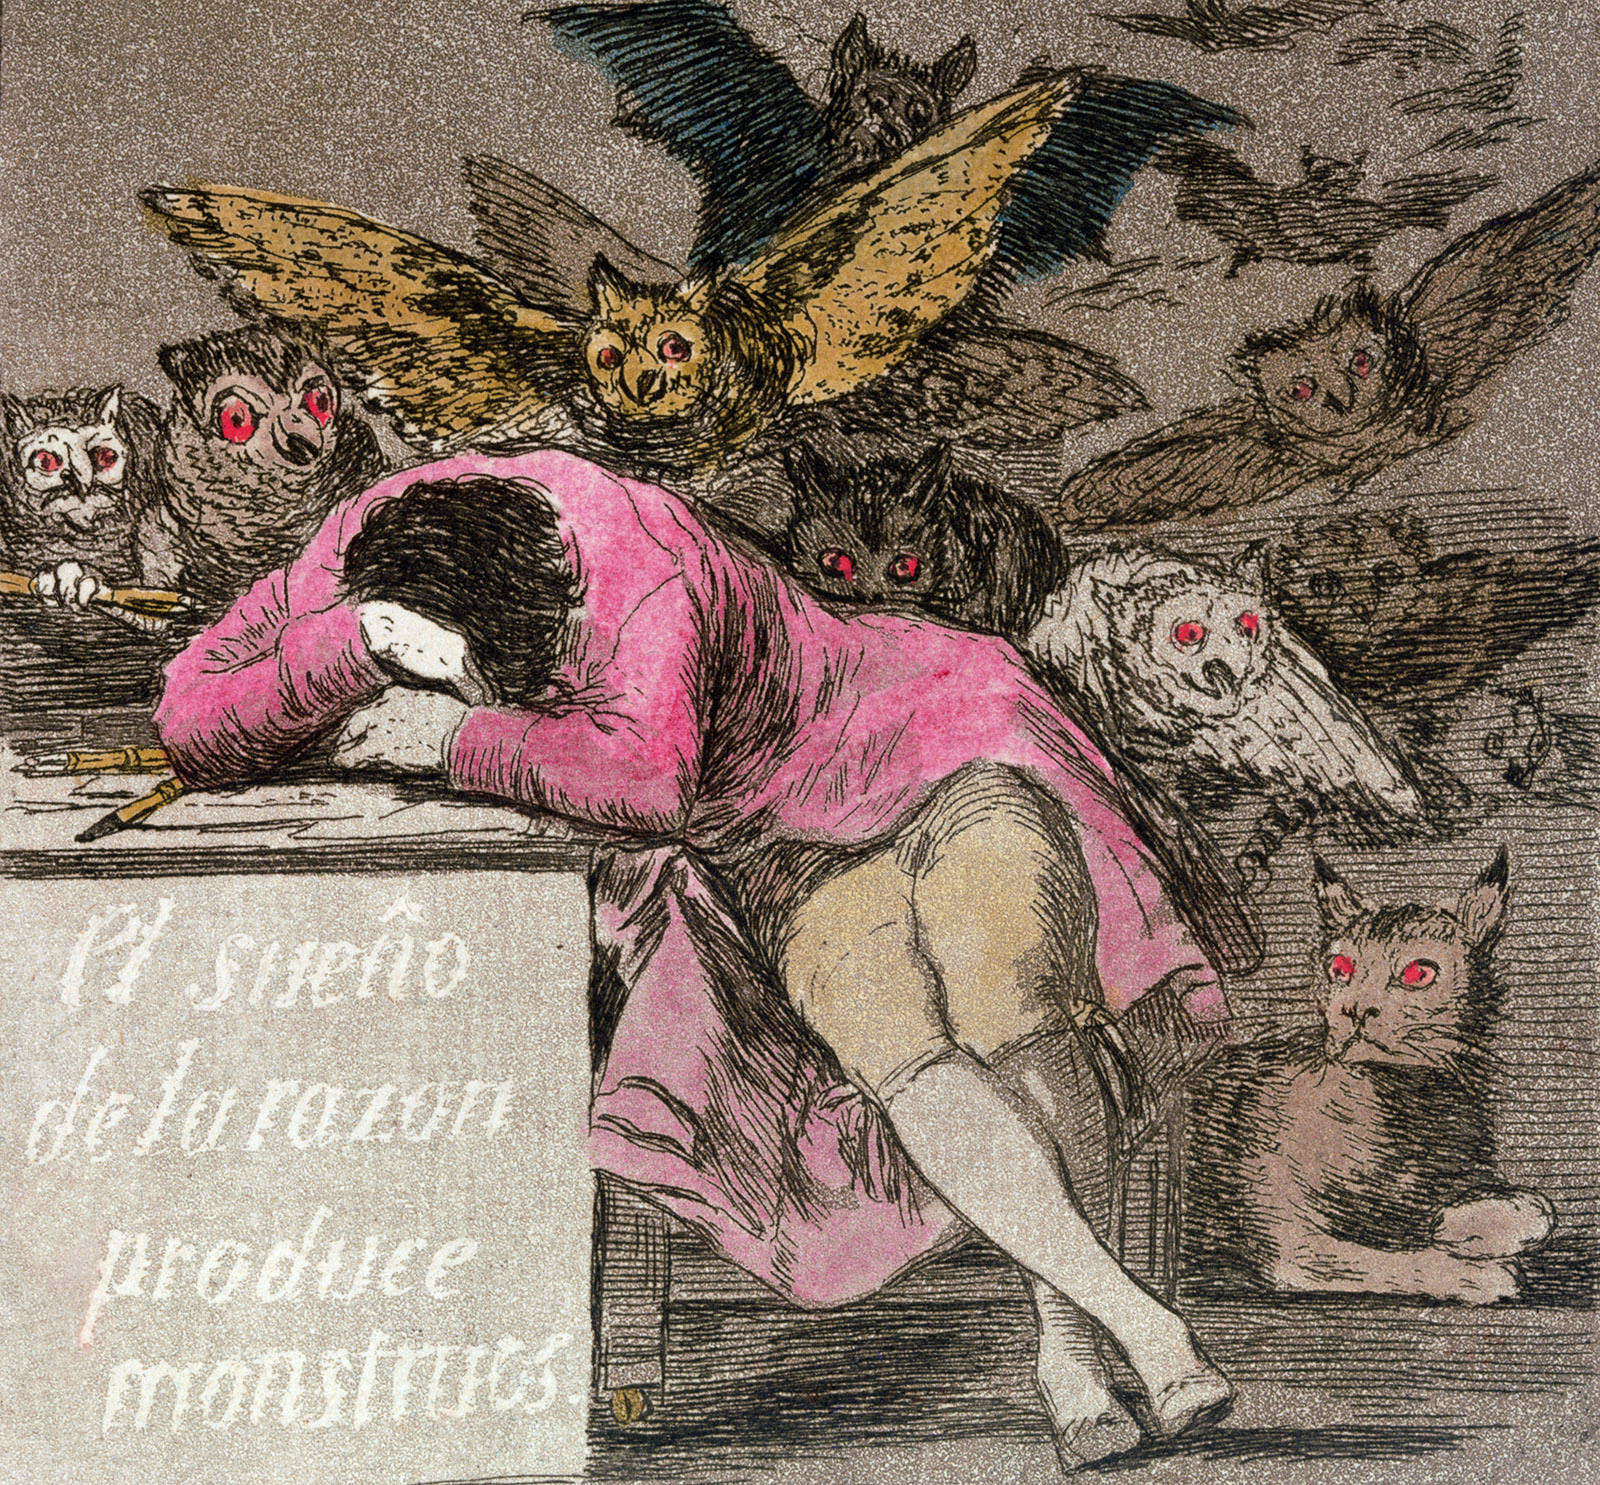 Francisco Goya: Detail from The Sleep of Reason Produces Monsters, circa 1810